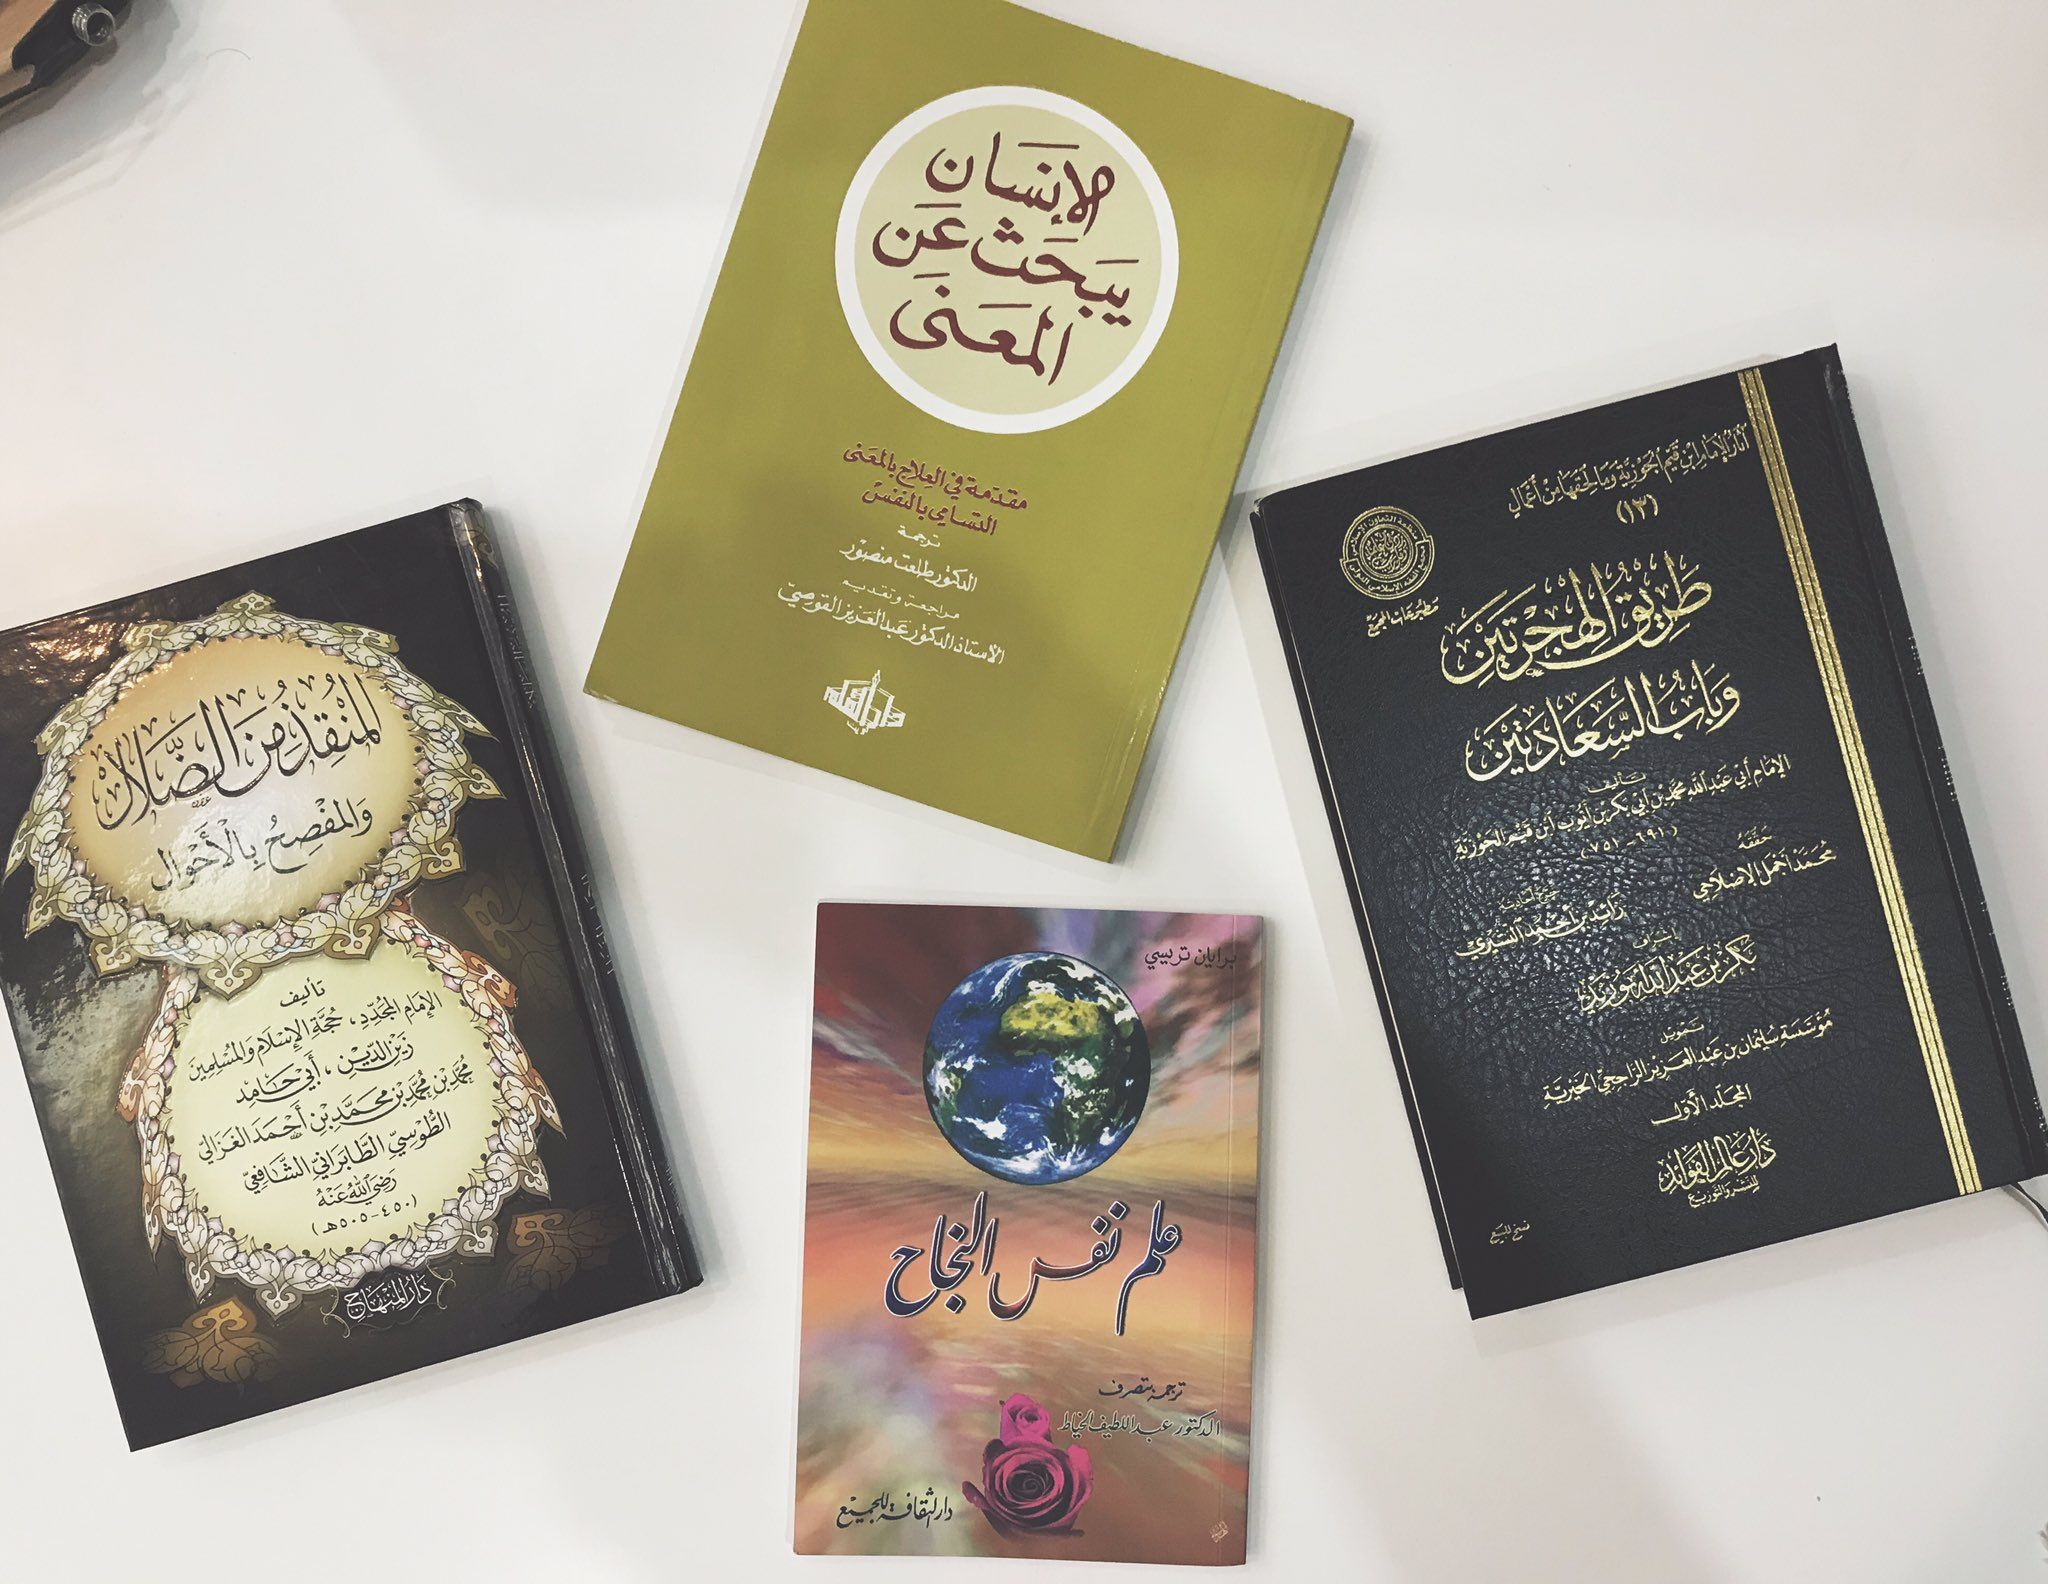 Pin By Moaaz Mohamed On Books Arabic Books Books Book Cover